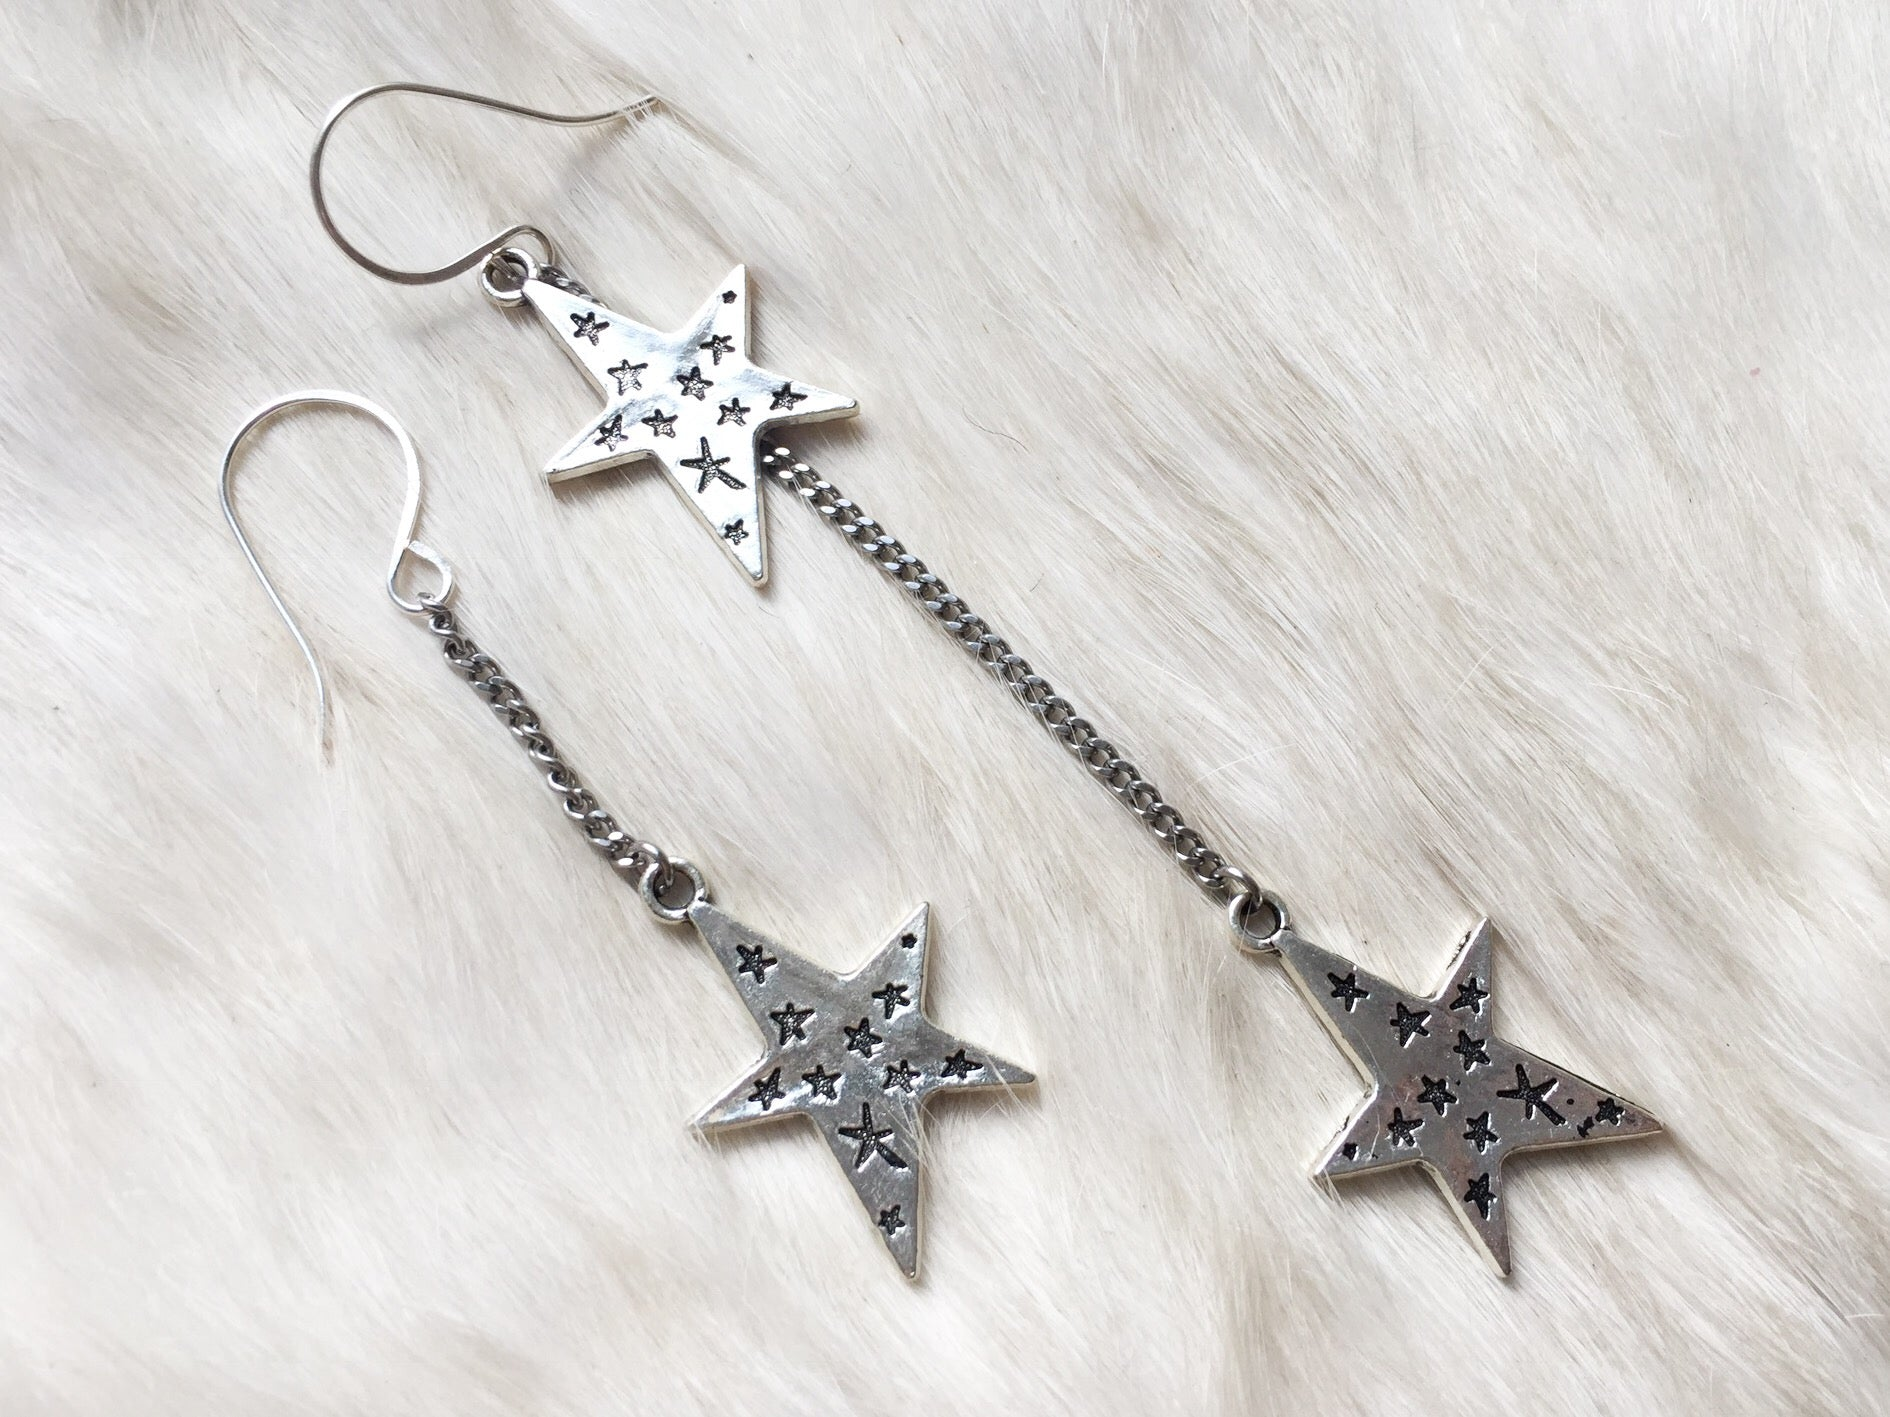 Asymmetric star earrings